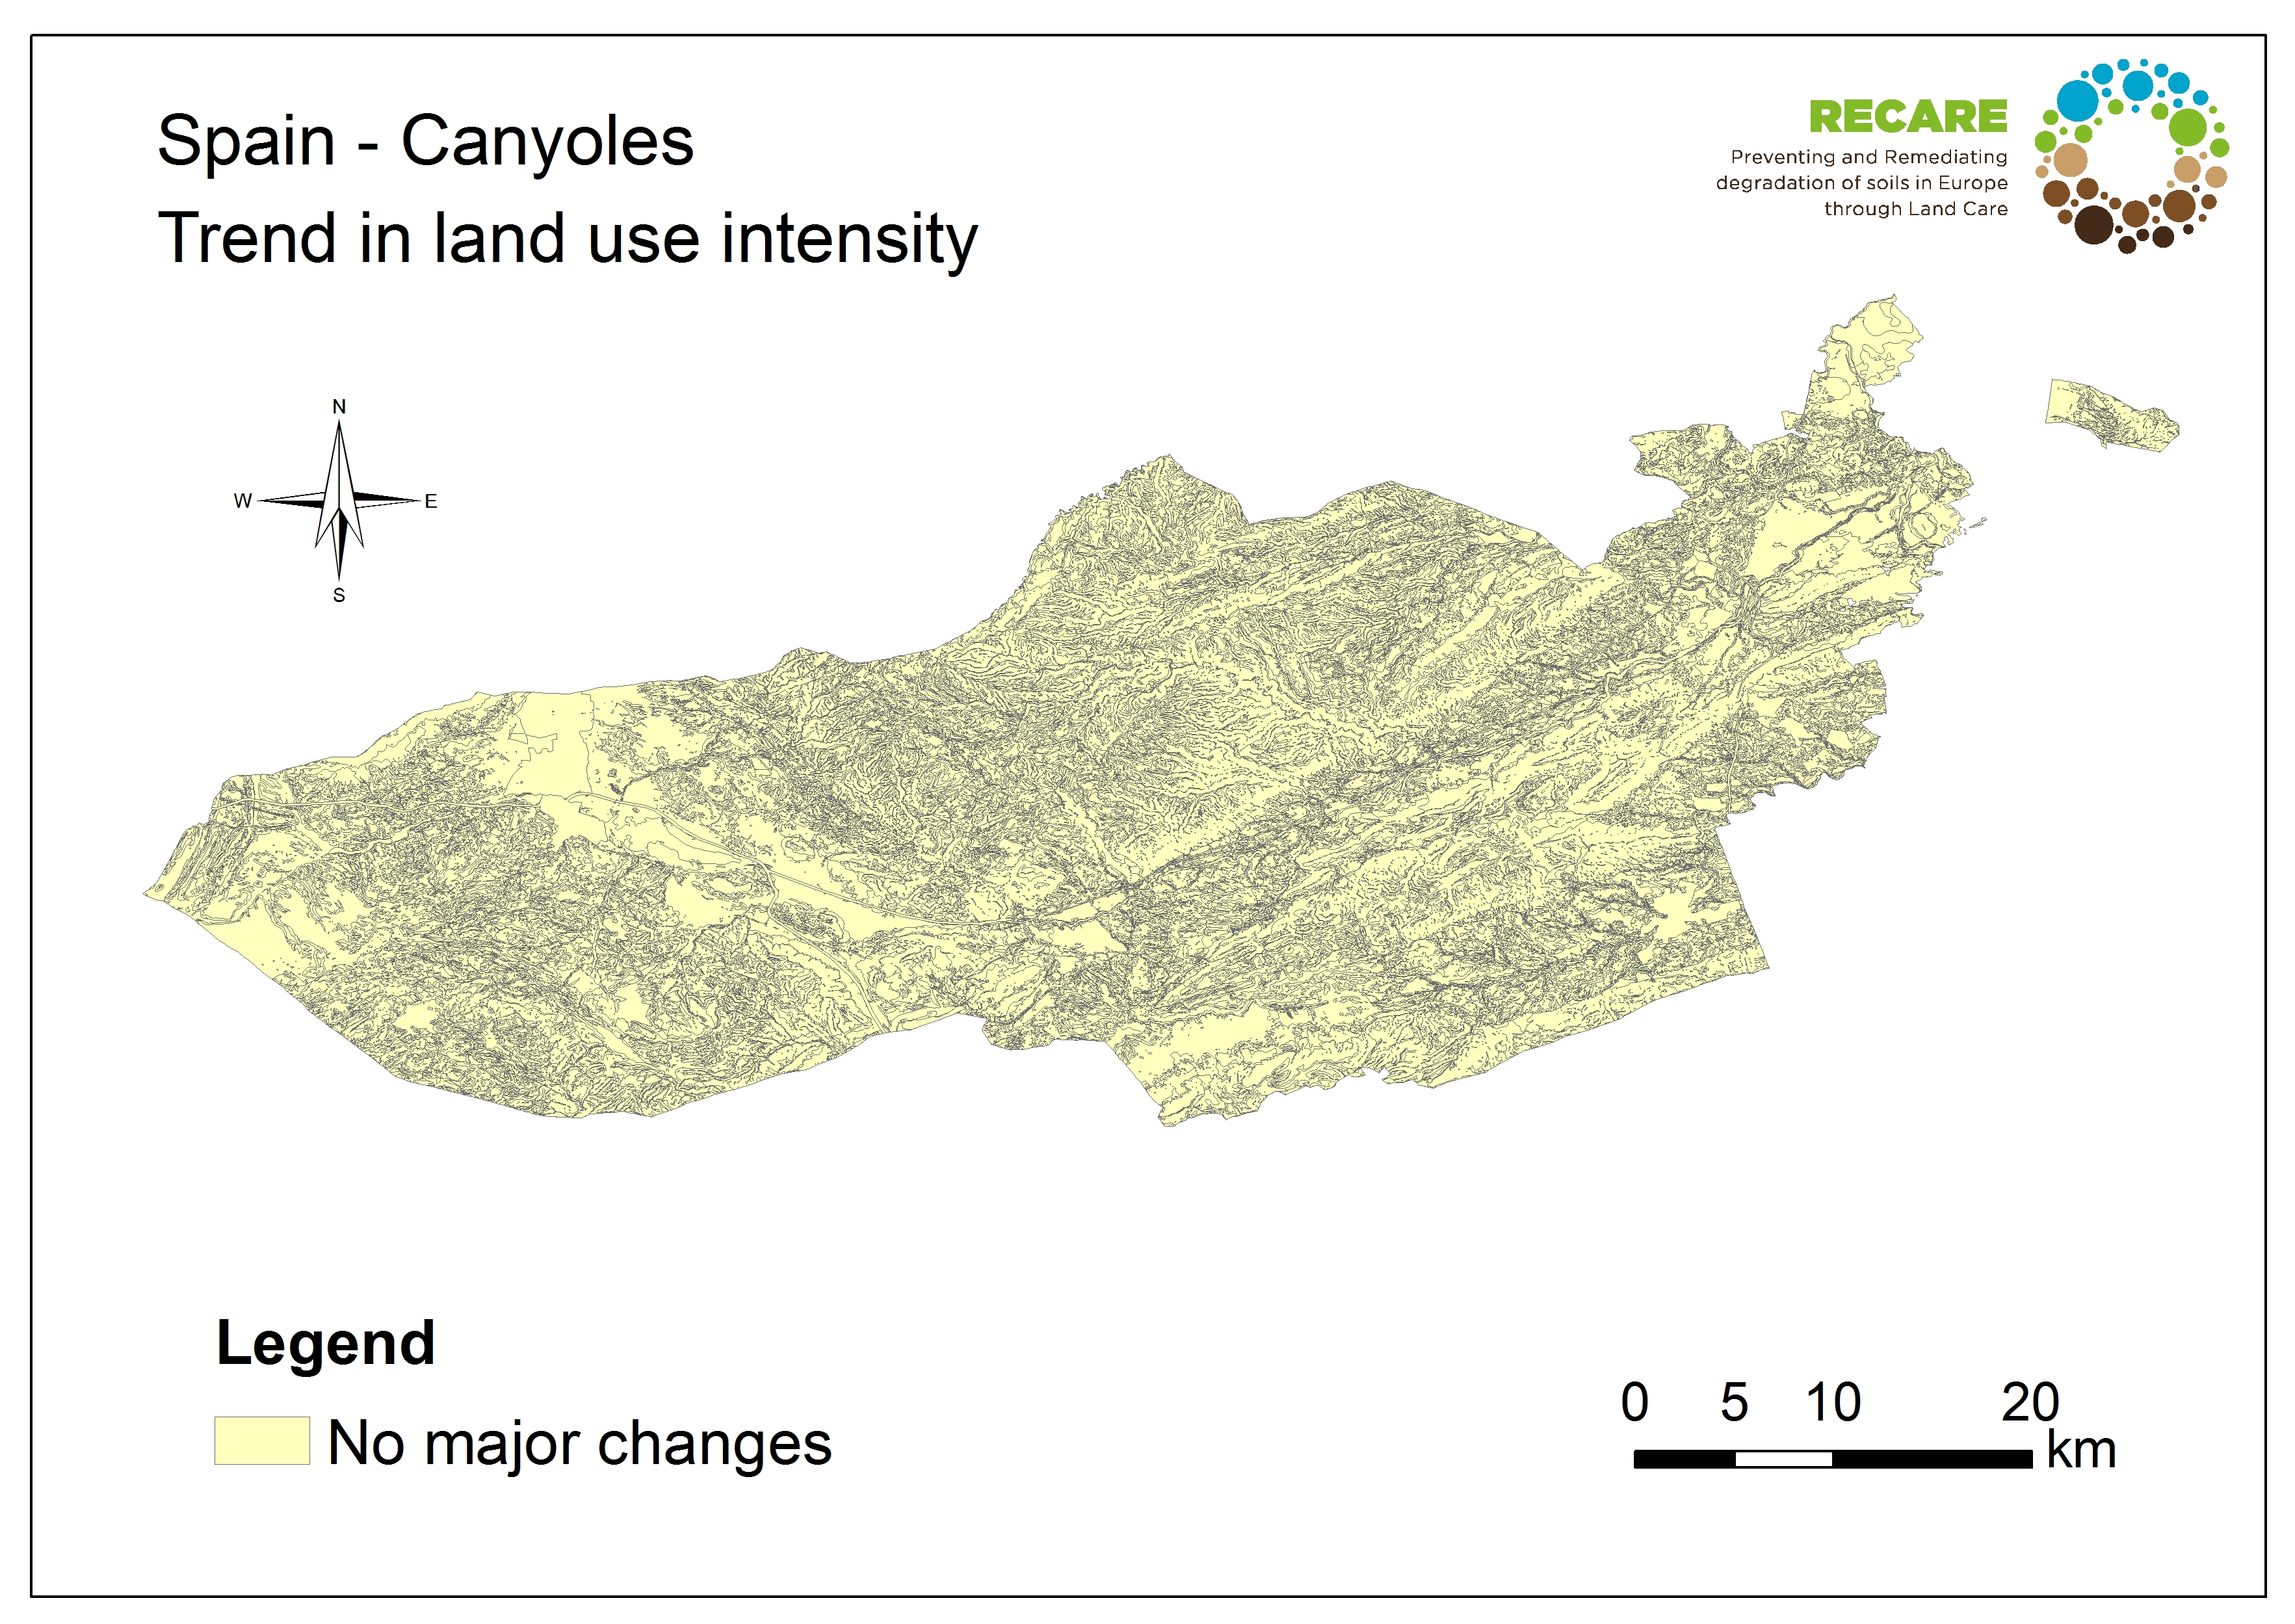 Spain Canyoles trend in land use intensityS